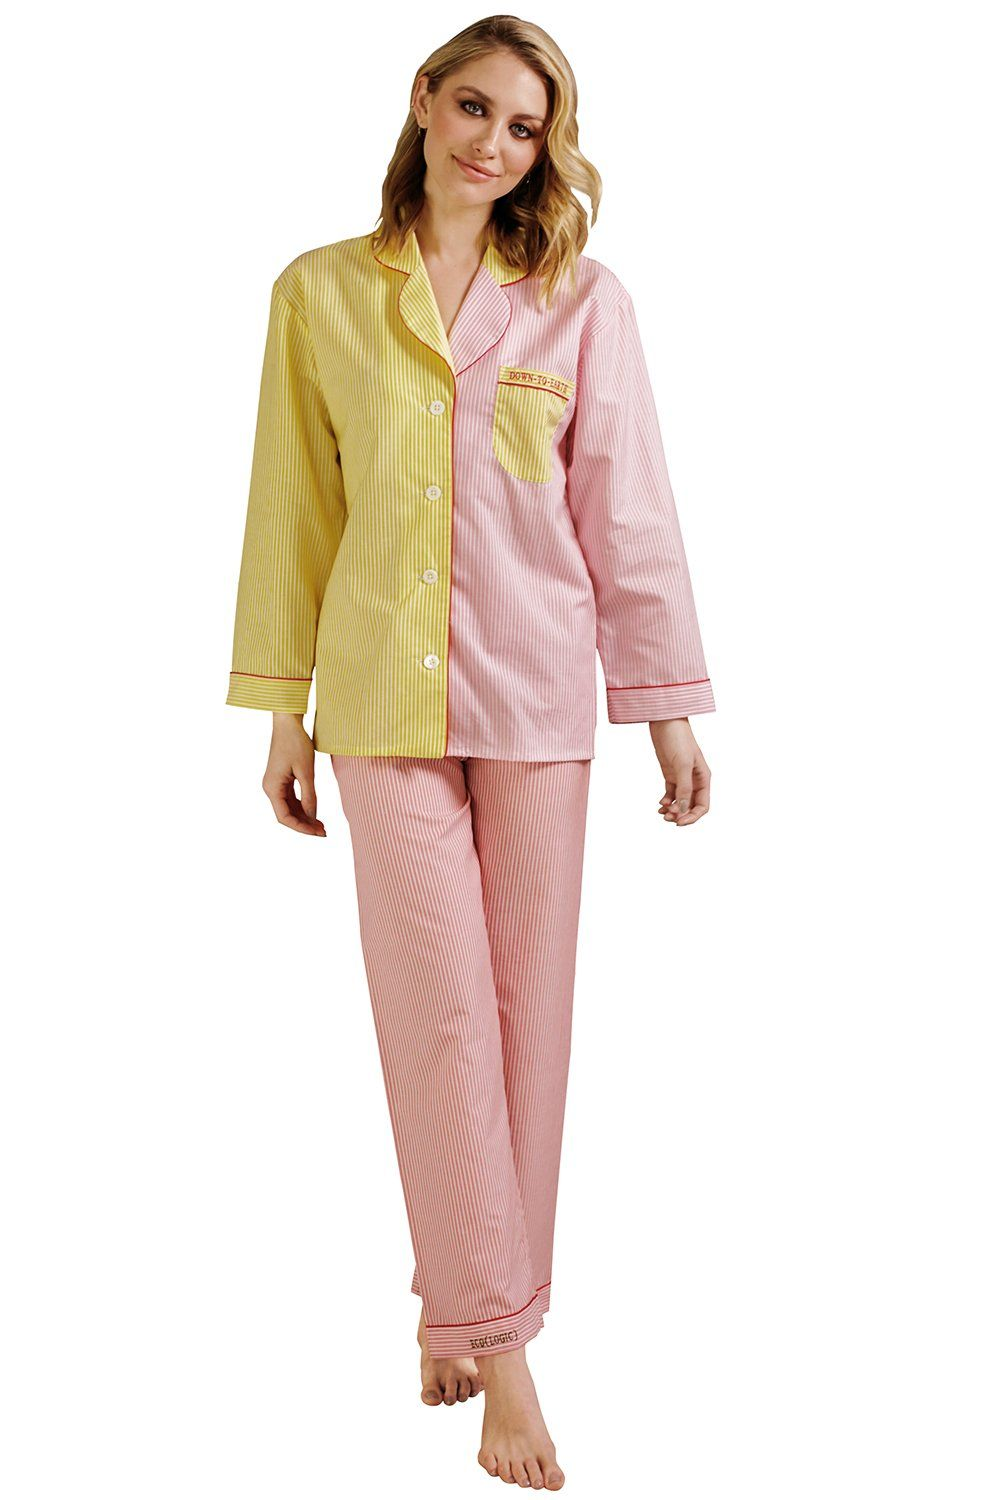 """Down-to-Earth Pajamas DOU.K maison-de-mode.com $72,000.00 SHOP NOW """"To celebrate Earth Day, my company MAISON DE MODE collaborated with DOU.K Studio on the cutest set of eco-friendly PJ's! This top-and-bottom set - which can also be worn separately as daywear - is made with OEKO-TEX 100 certified fabrics (aka natural and organic) and they are embroidered with """"ECO(LOGIC)"""" on the pant cuff and and """"DOWN-TO-EARTH"""" on the breast pocket. Talk about wearing your values!"""" - Amanda Hearst"""